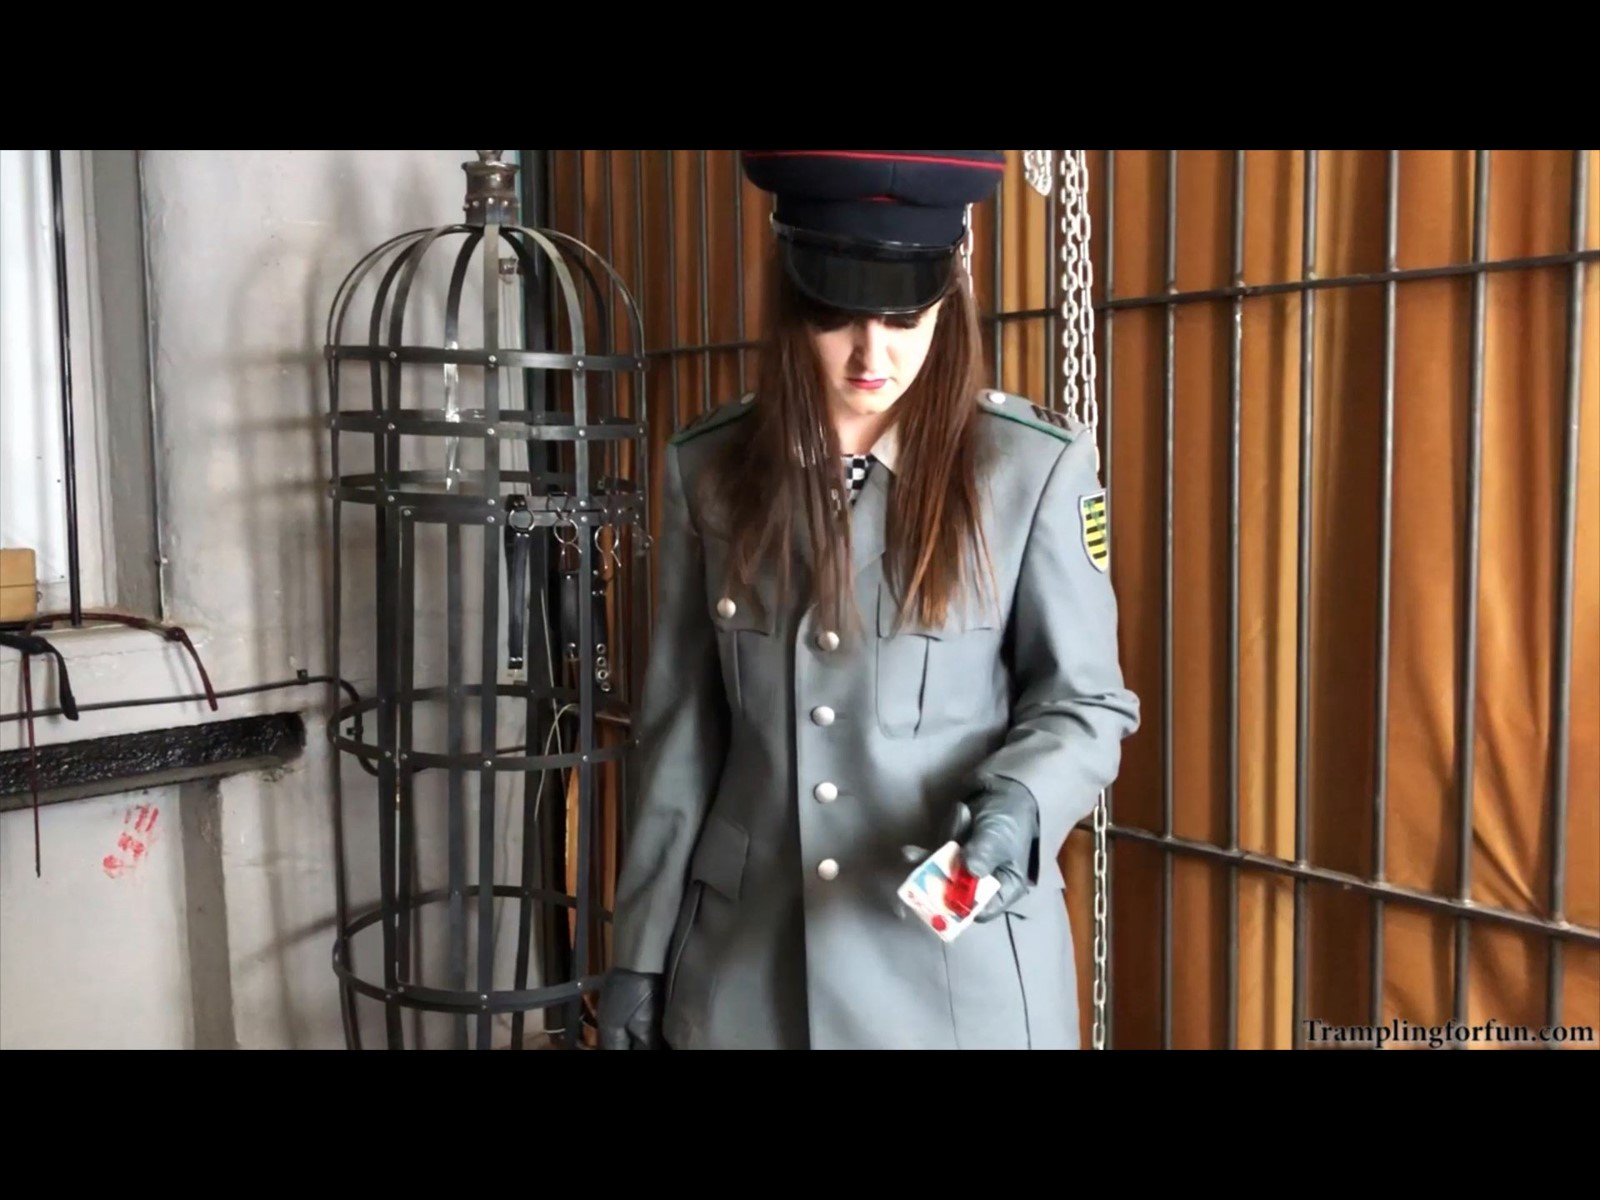 Gibbet Prison Cell Military Interrogation Roleplay BDSM Domination